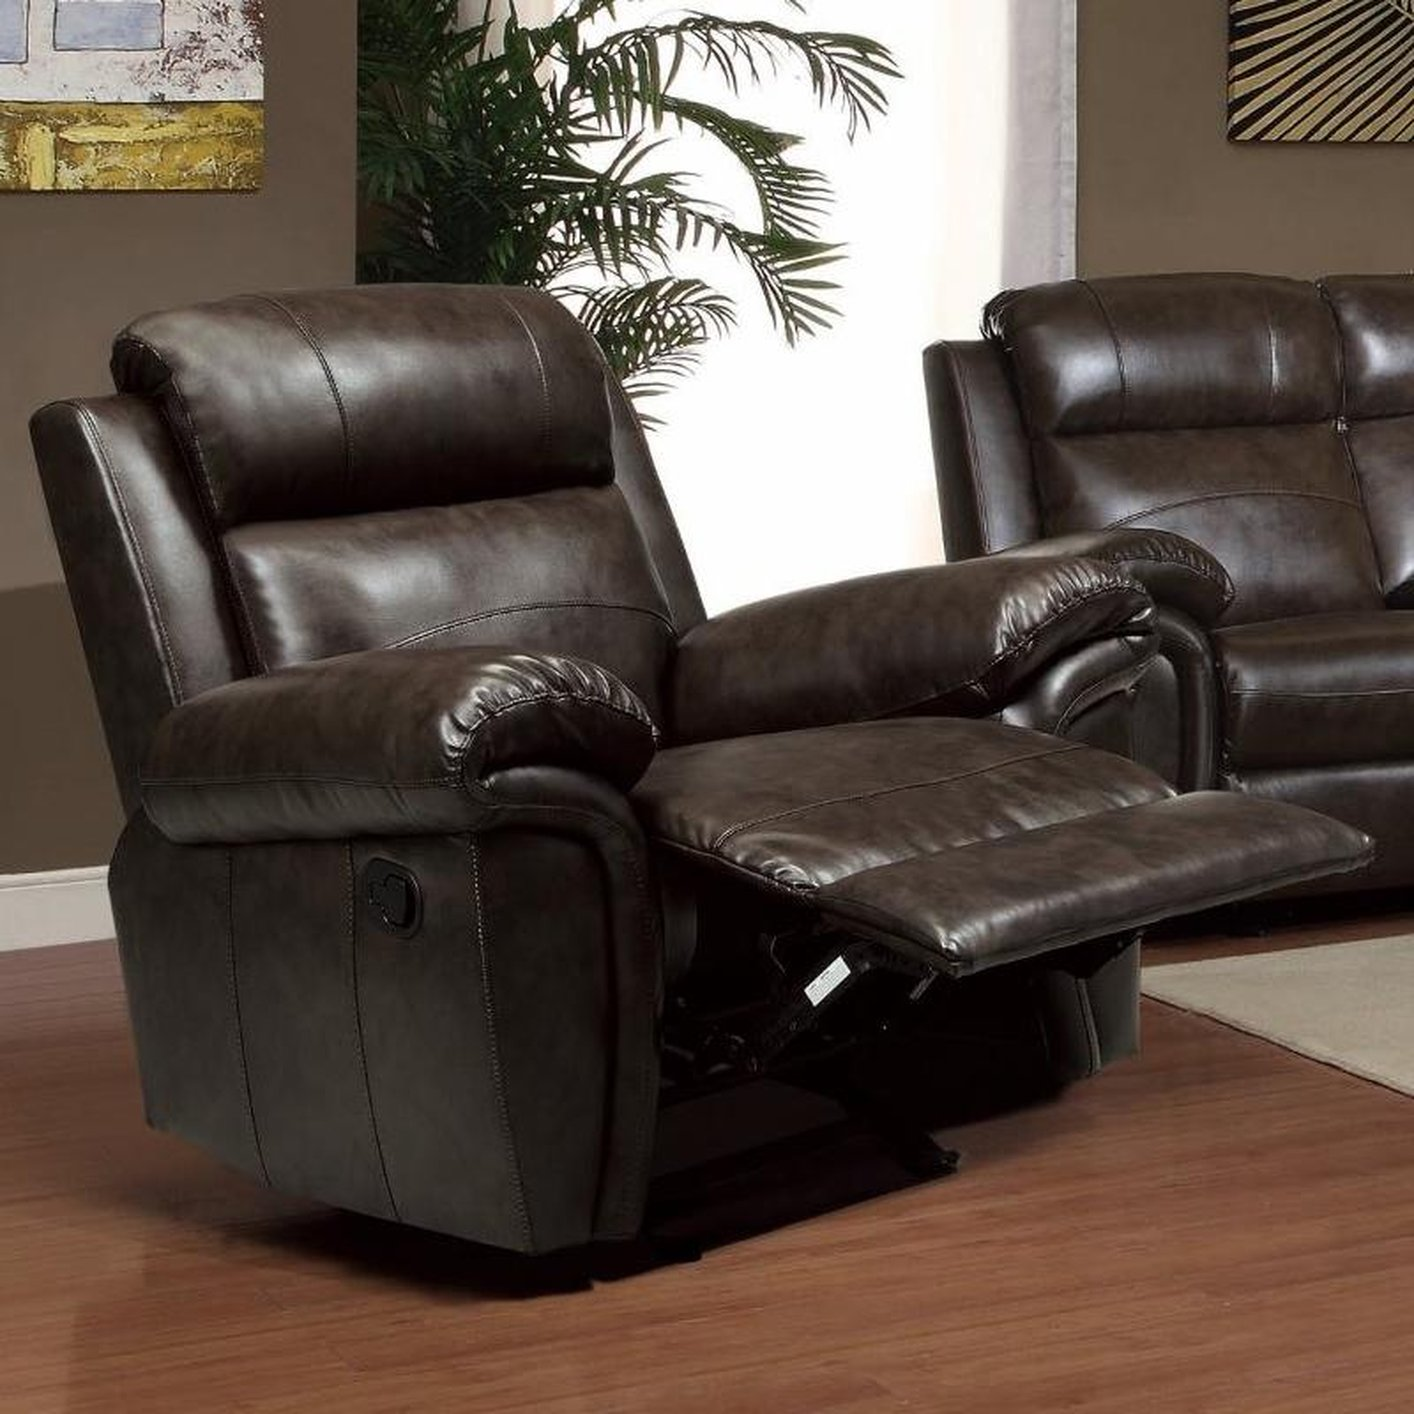 leather glider chair brown leather glider recliner a sofa furniture 16636 | brown leather glider recliner 3